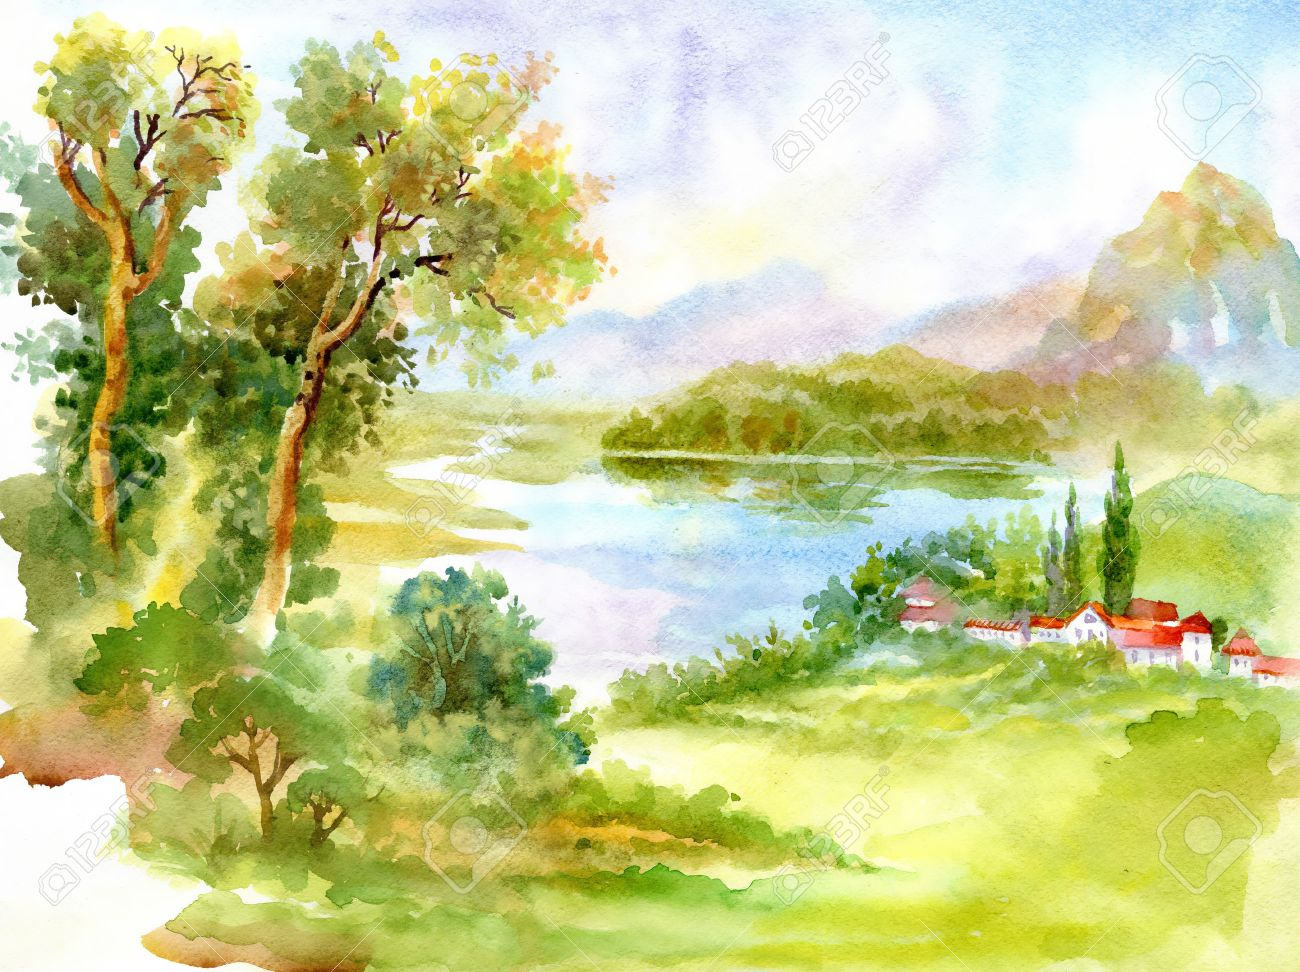 Watercolor River Nature Landscape Stock Photo, Picture And Royalty ...